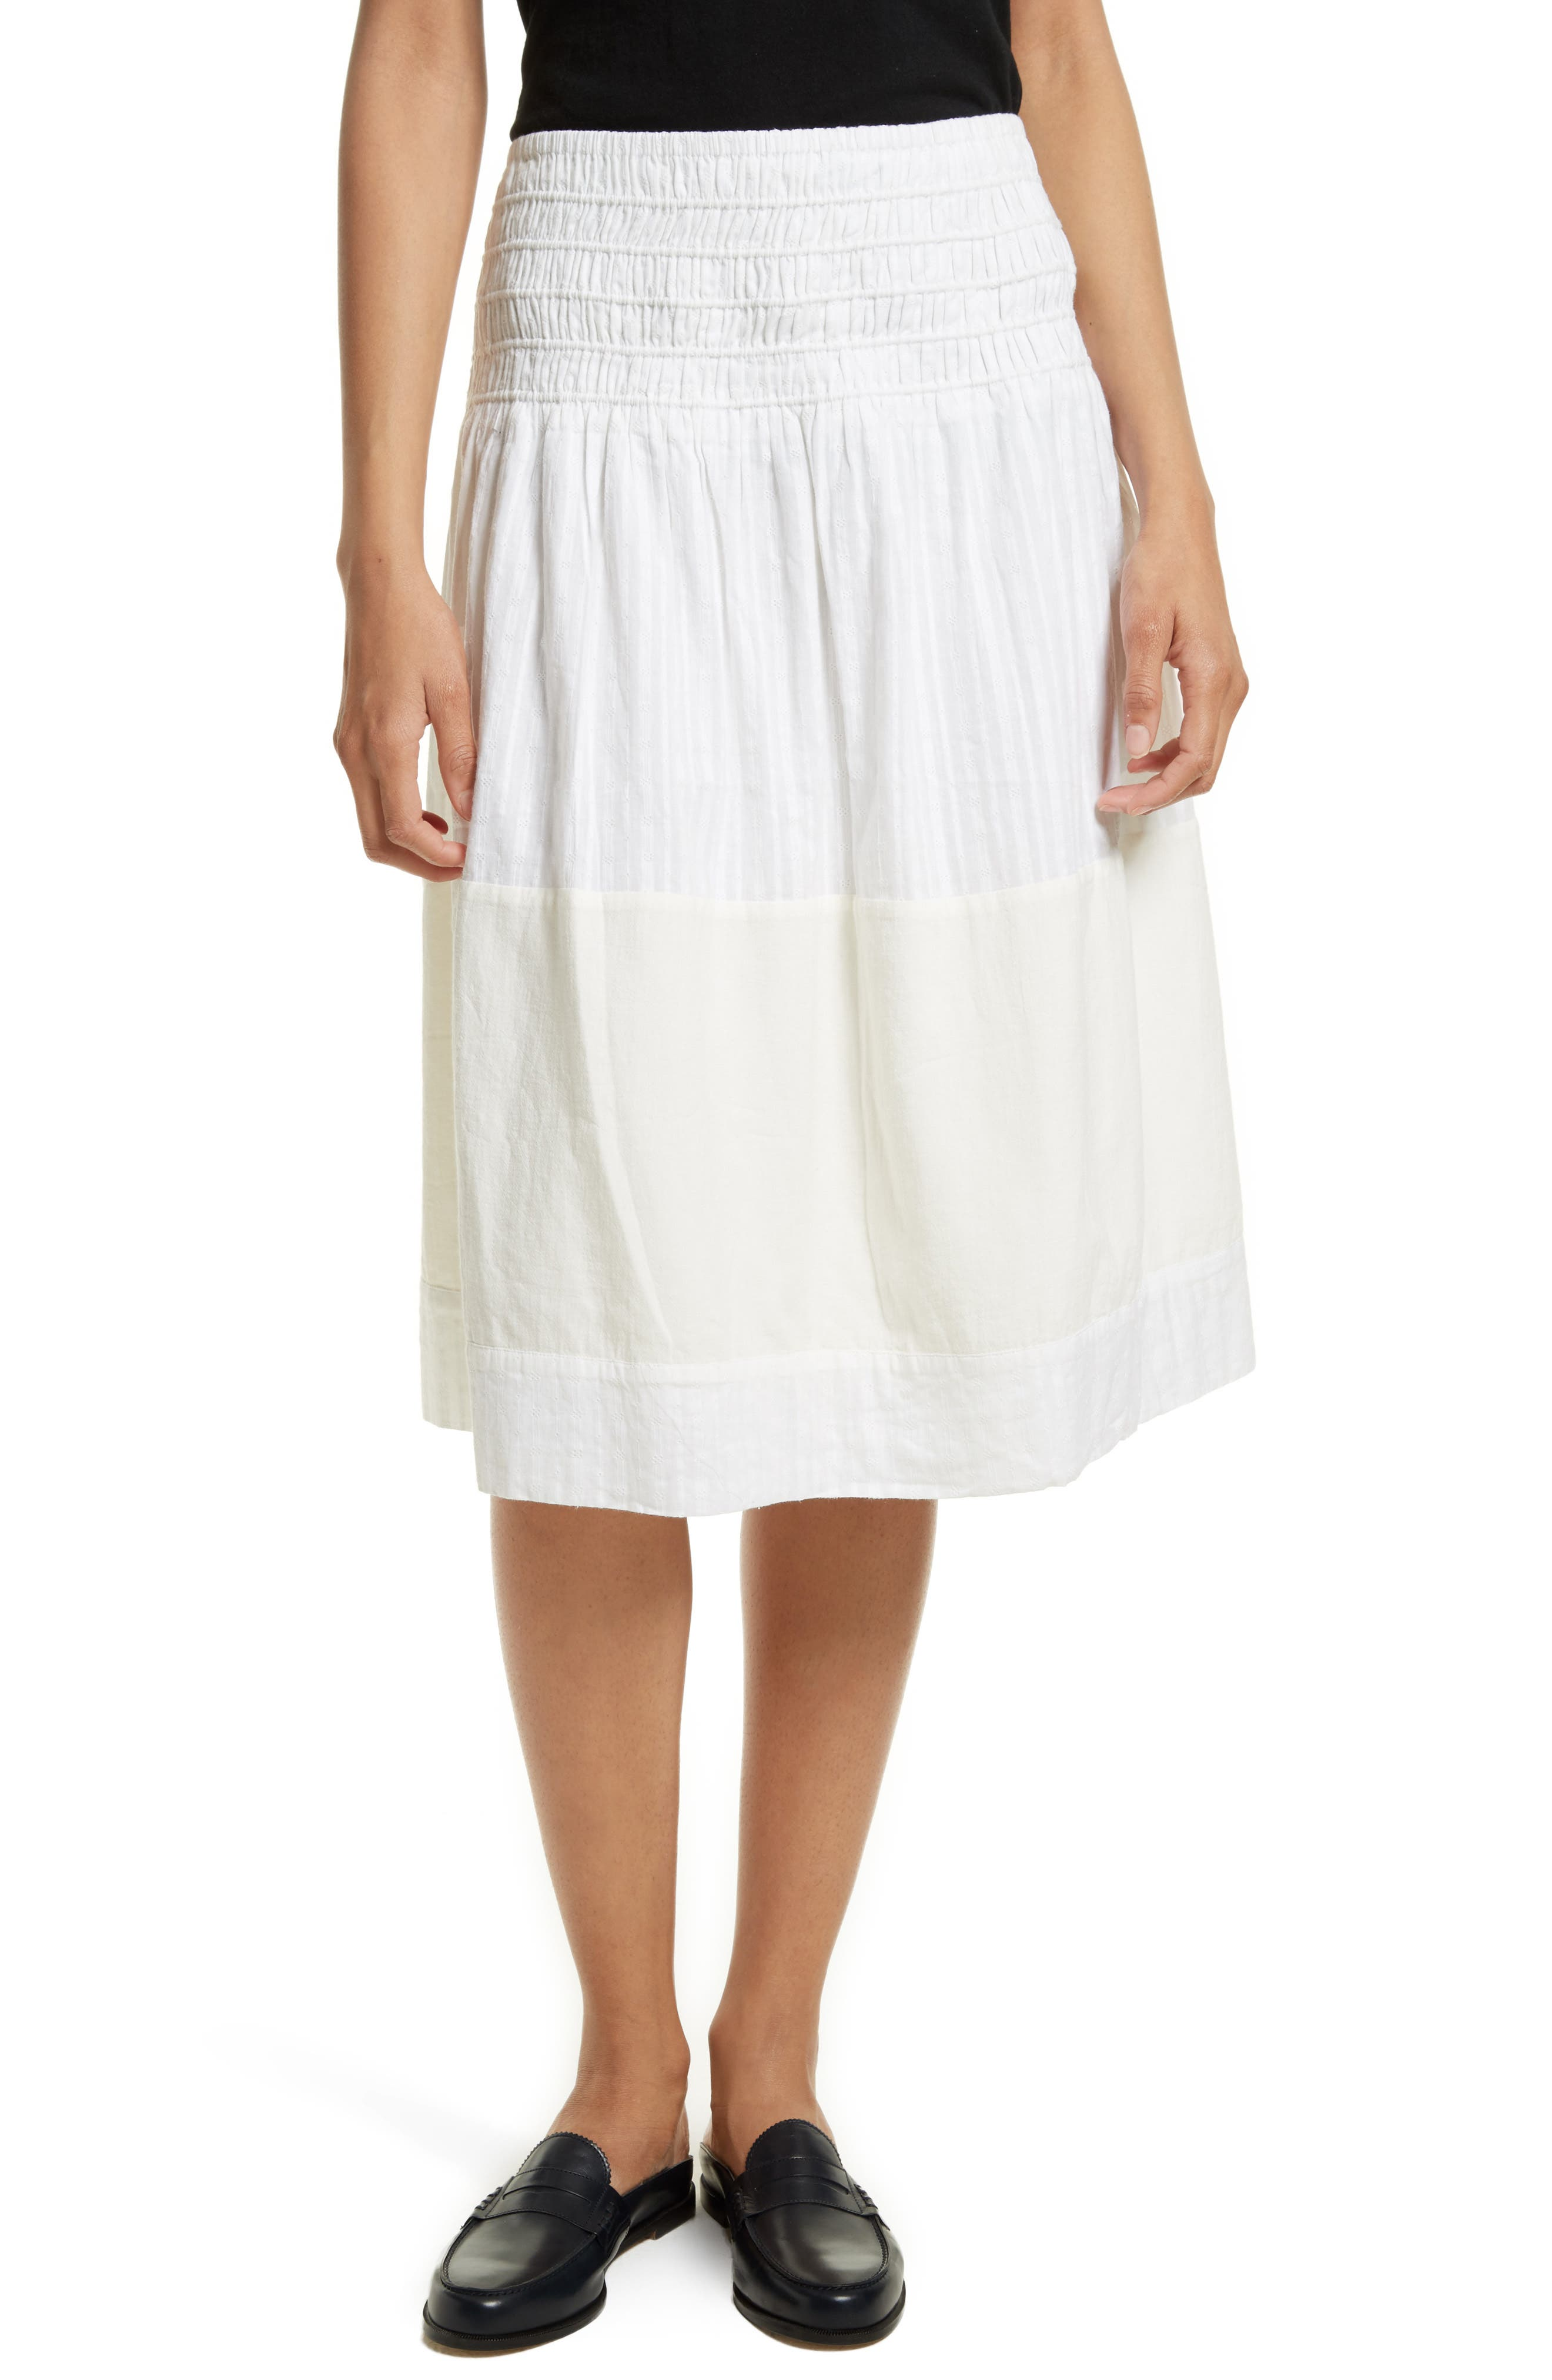 THE GREAT. The Afternoon Skirt